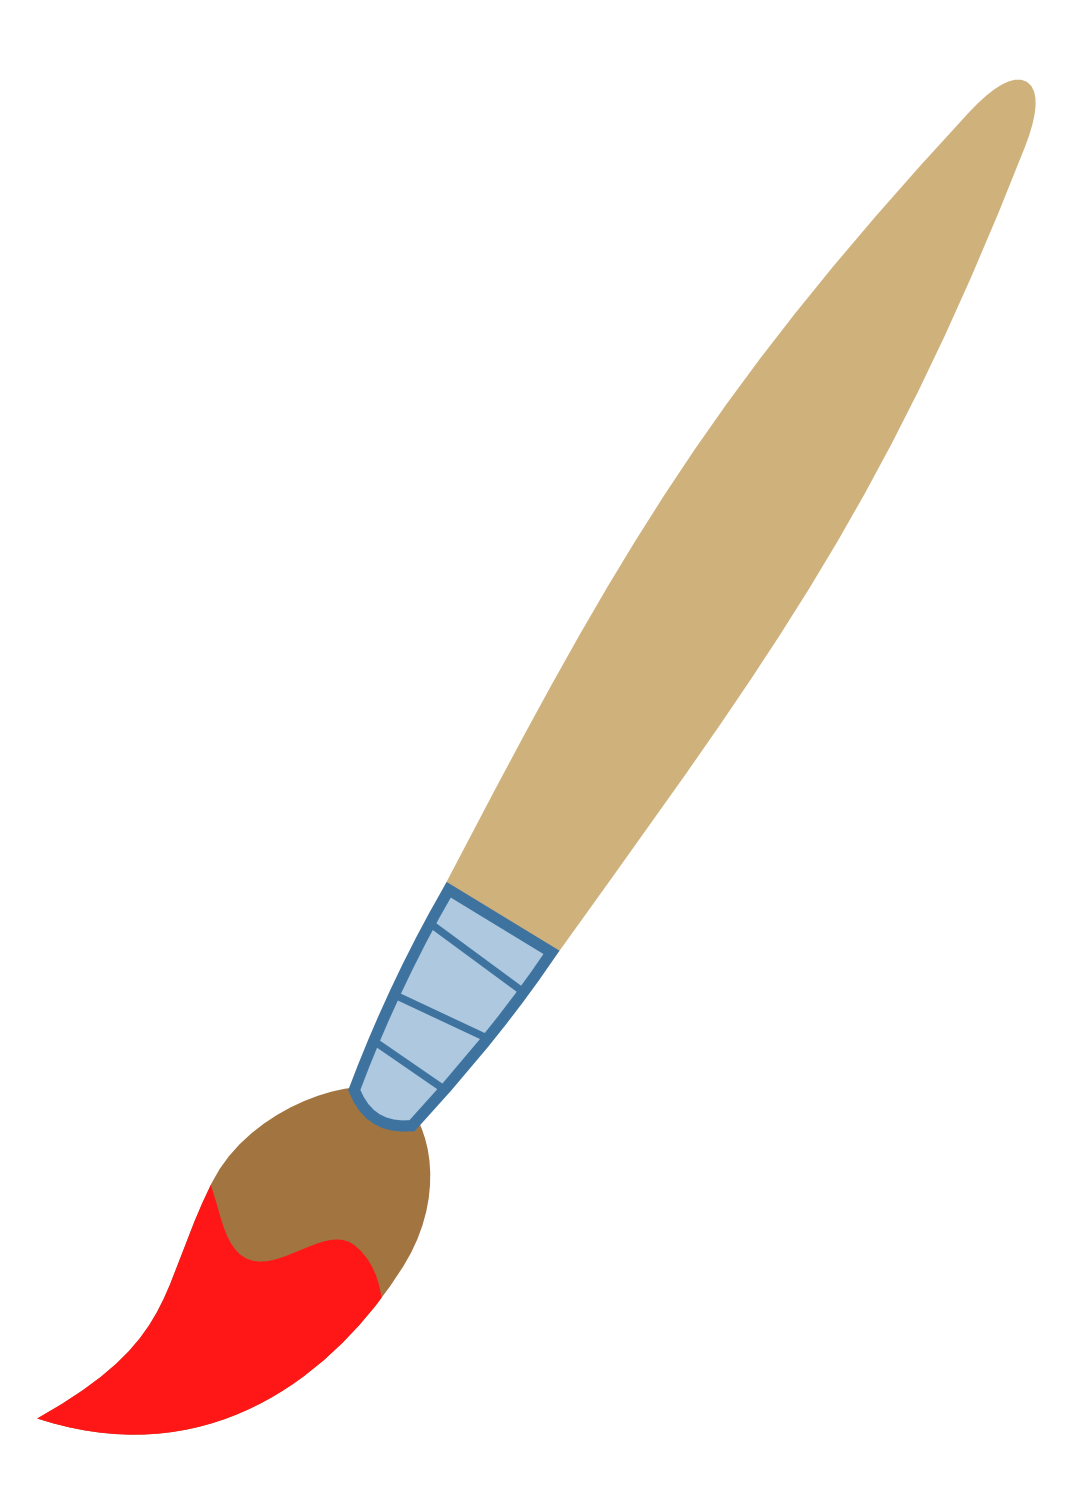 clipart of brush - photo #3